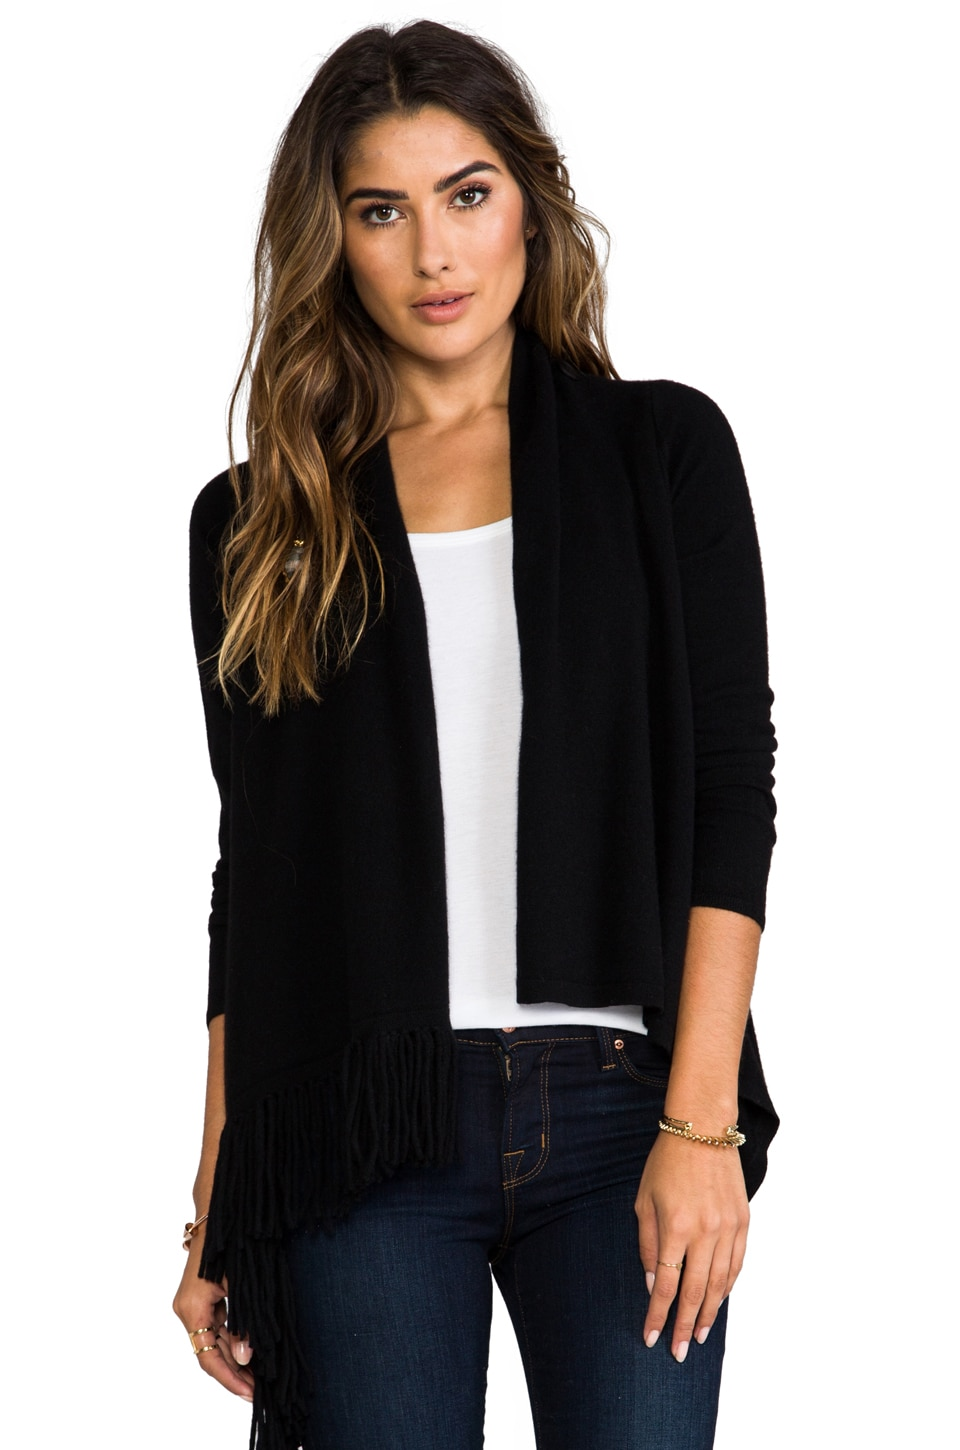 360 Sweater Izzy Cardigan in Black